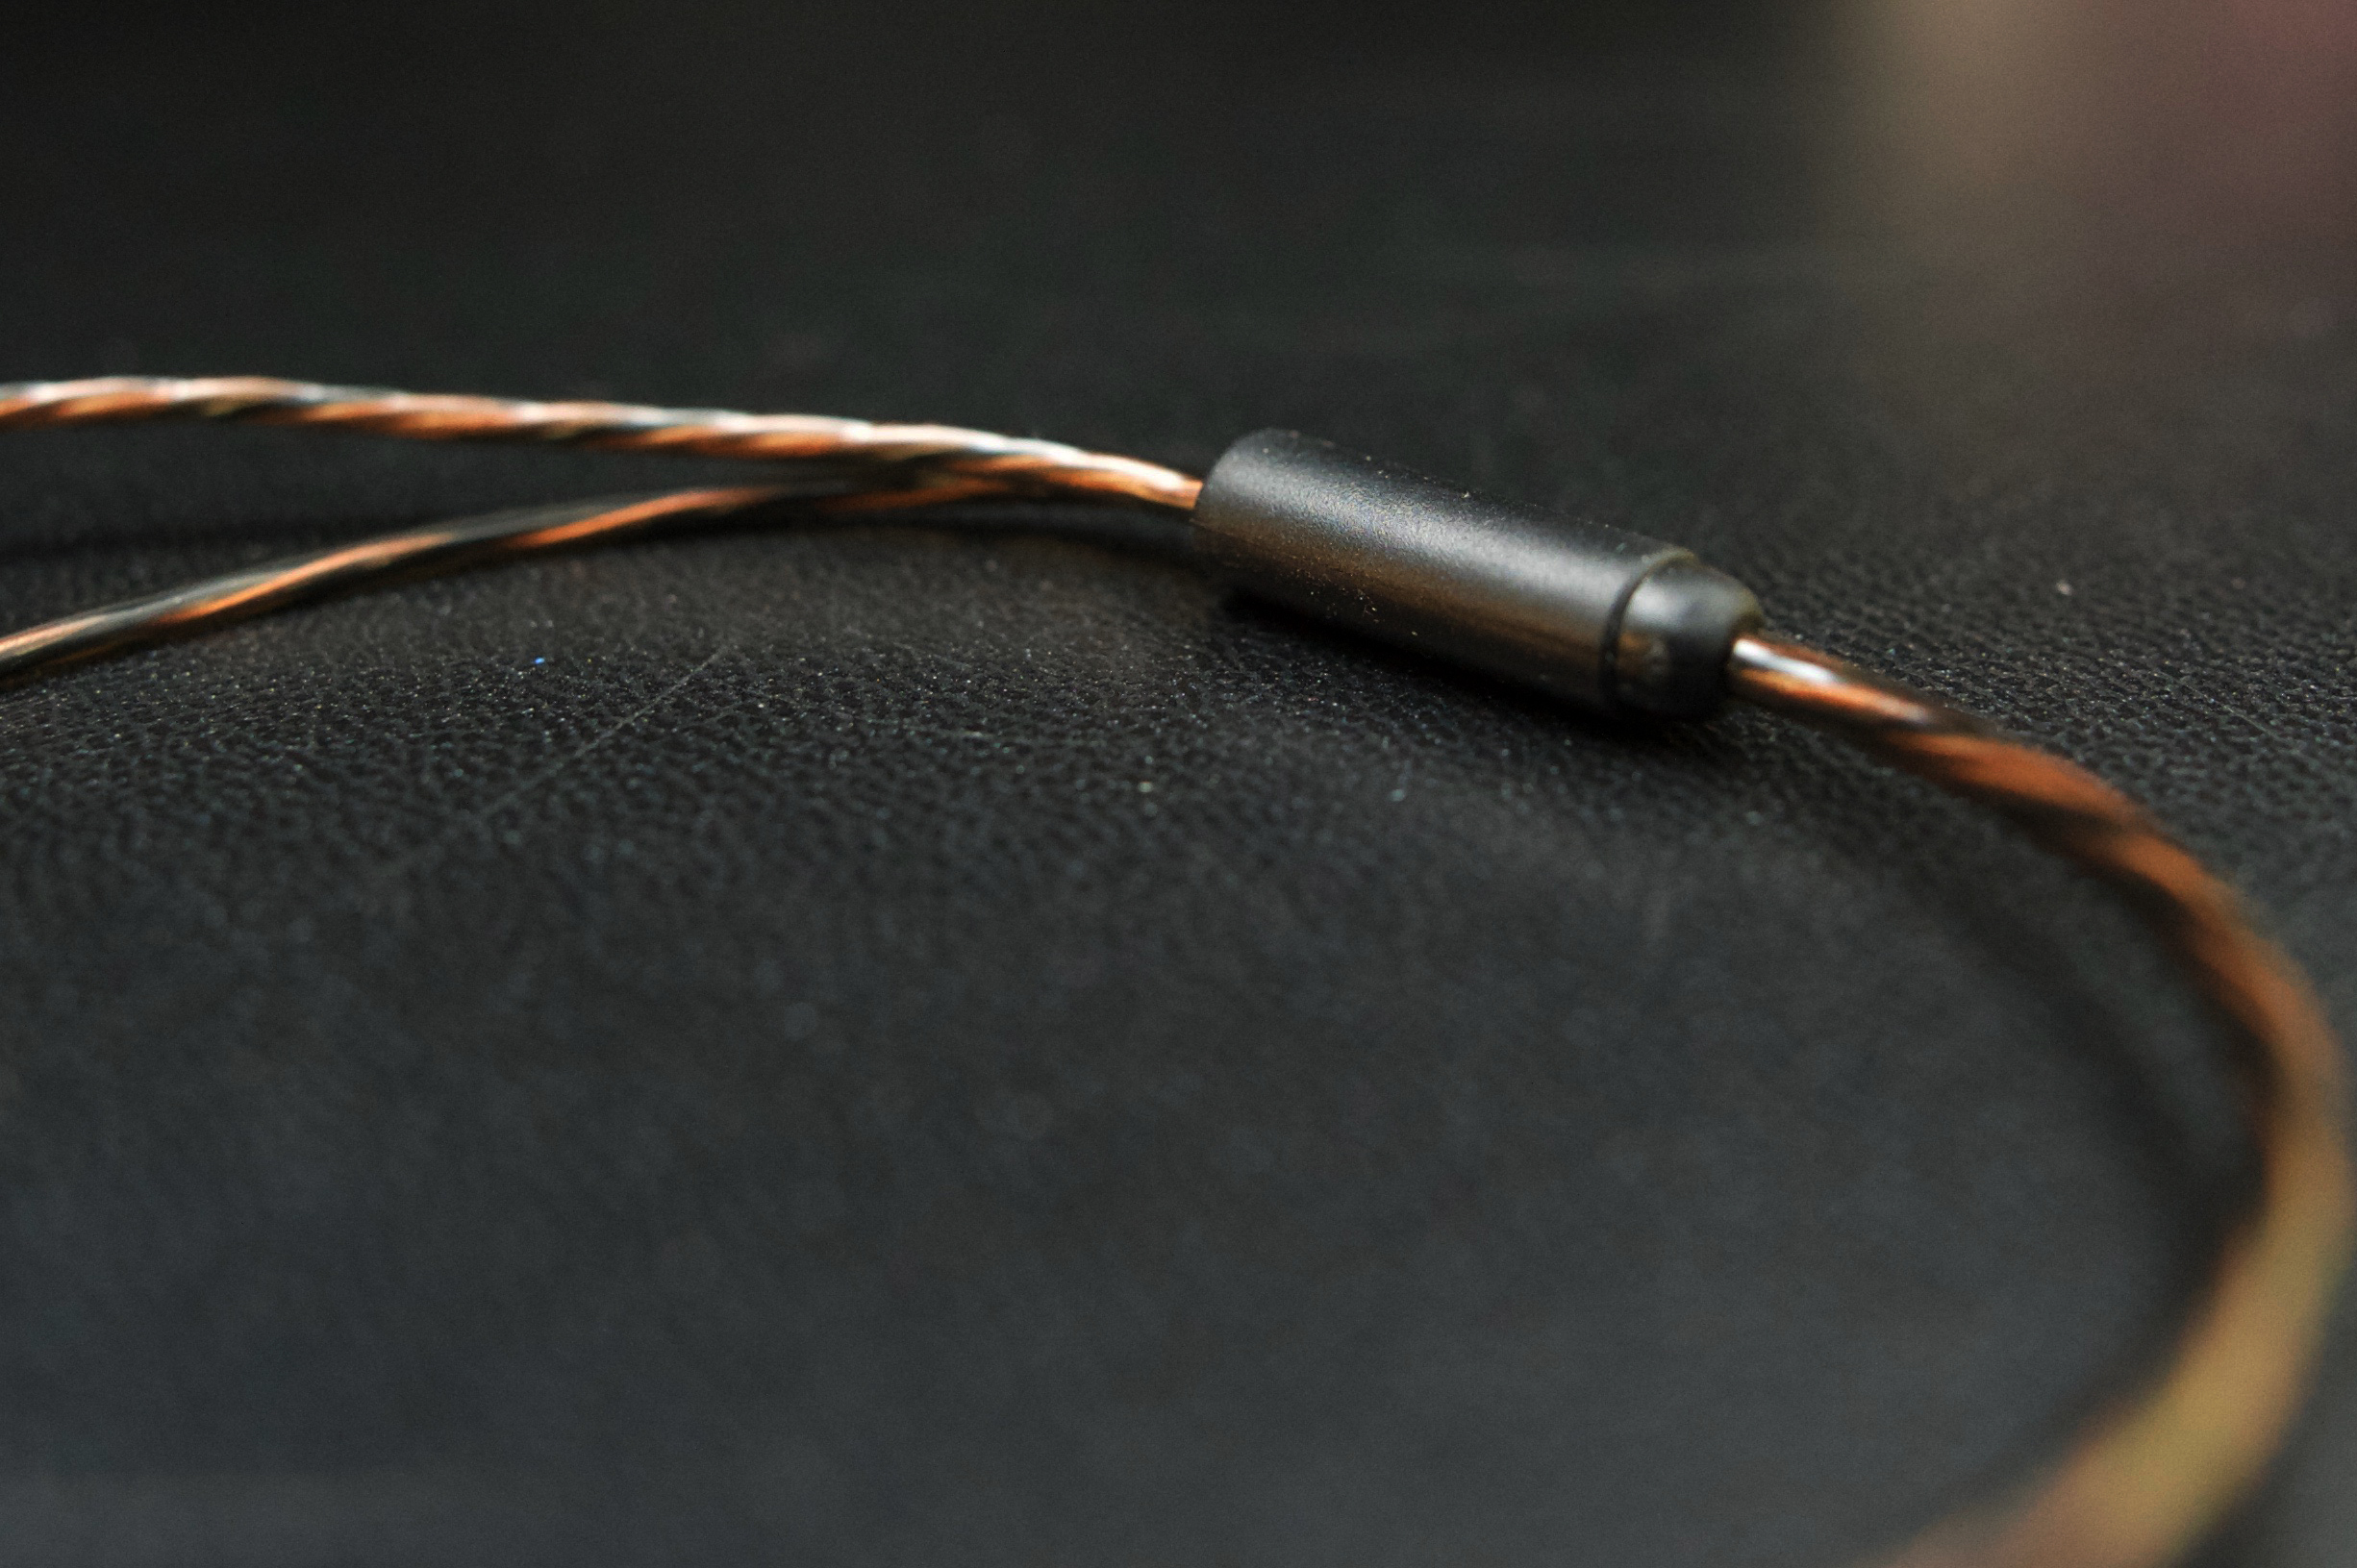 PMReviews] Klipsch XR8i | Headphone Reviews and Discussion - Head-Fi.org